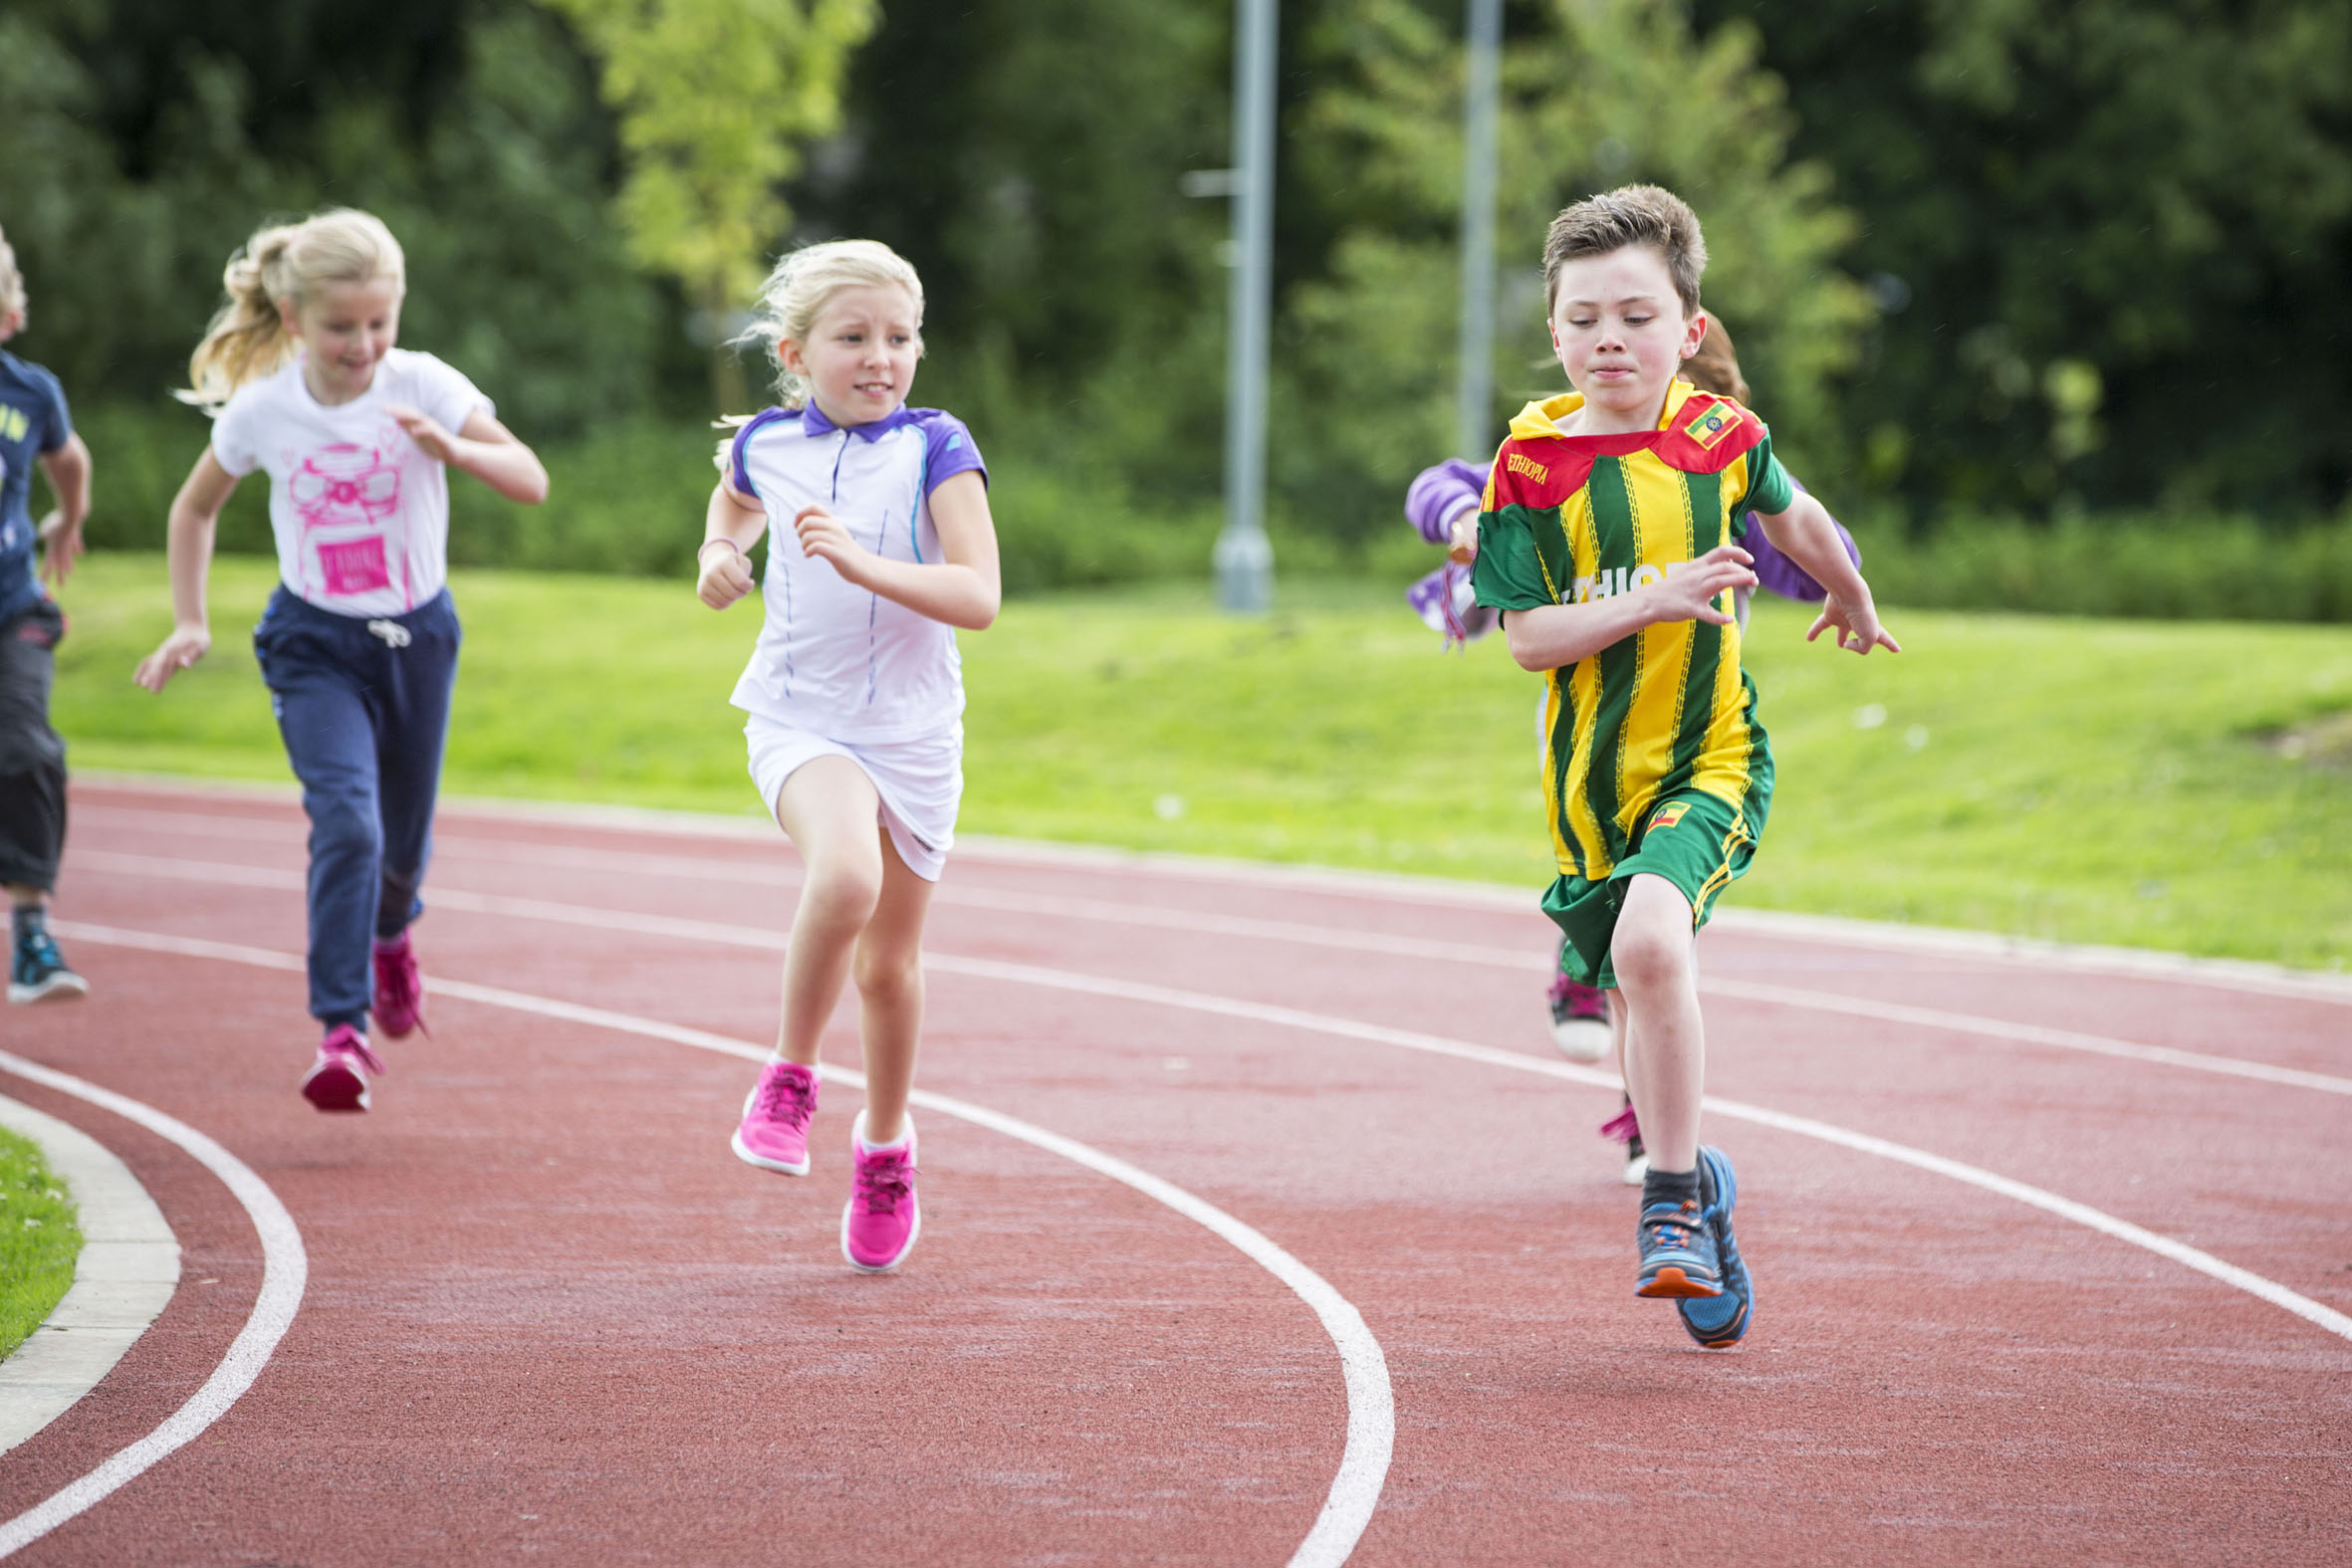 New grant aimed at encouraging East Renfrewshire kids to get sporty